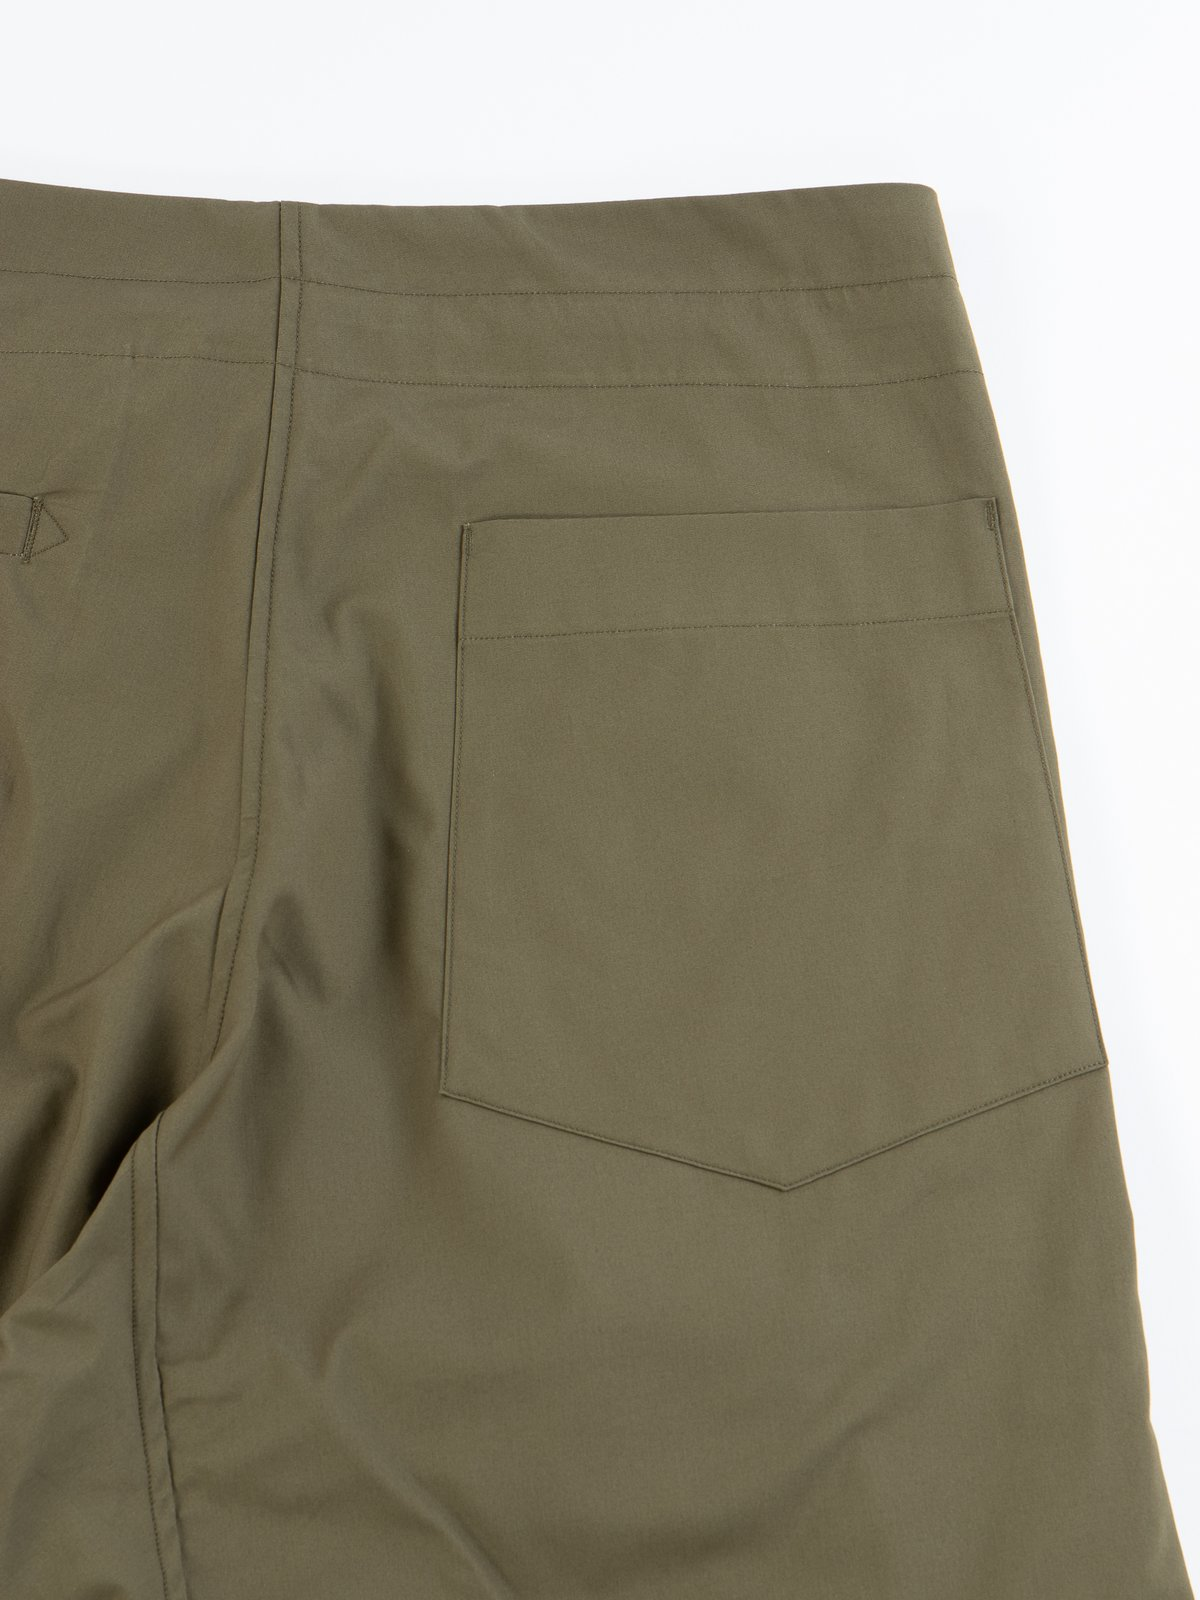 Olive Oxford Vancloth Drop Crotch Pant - Image 6